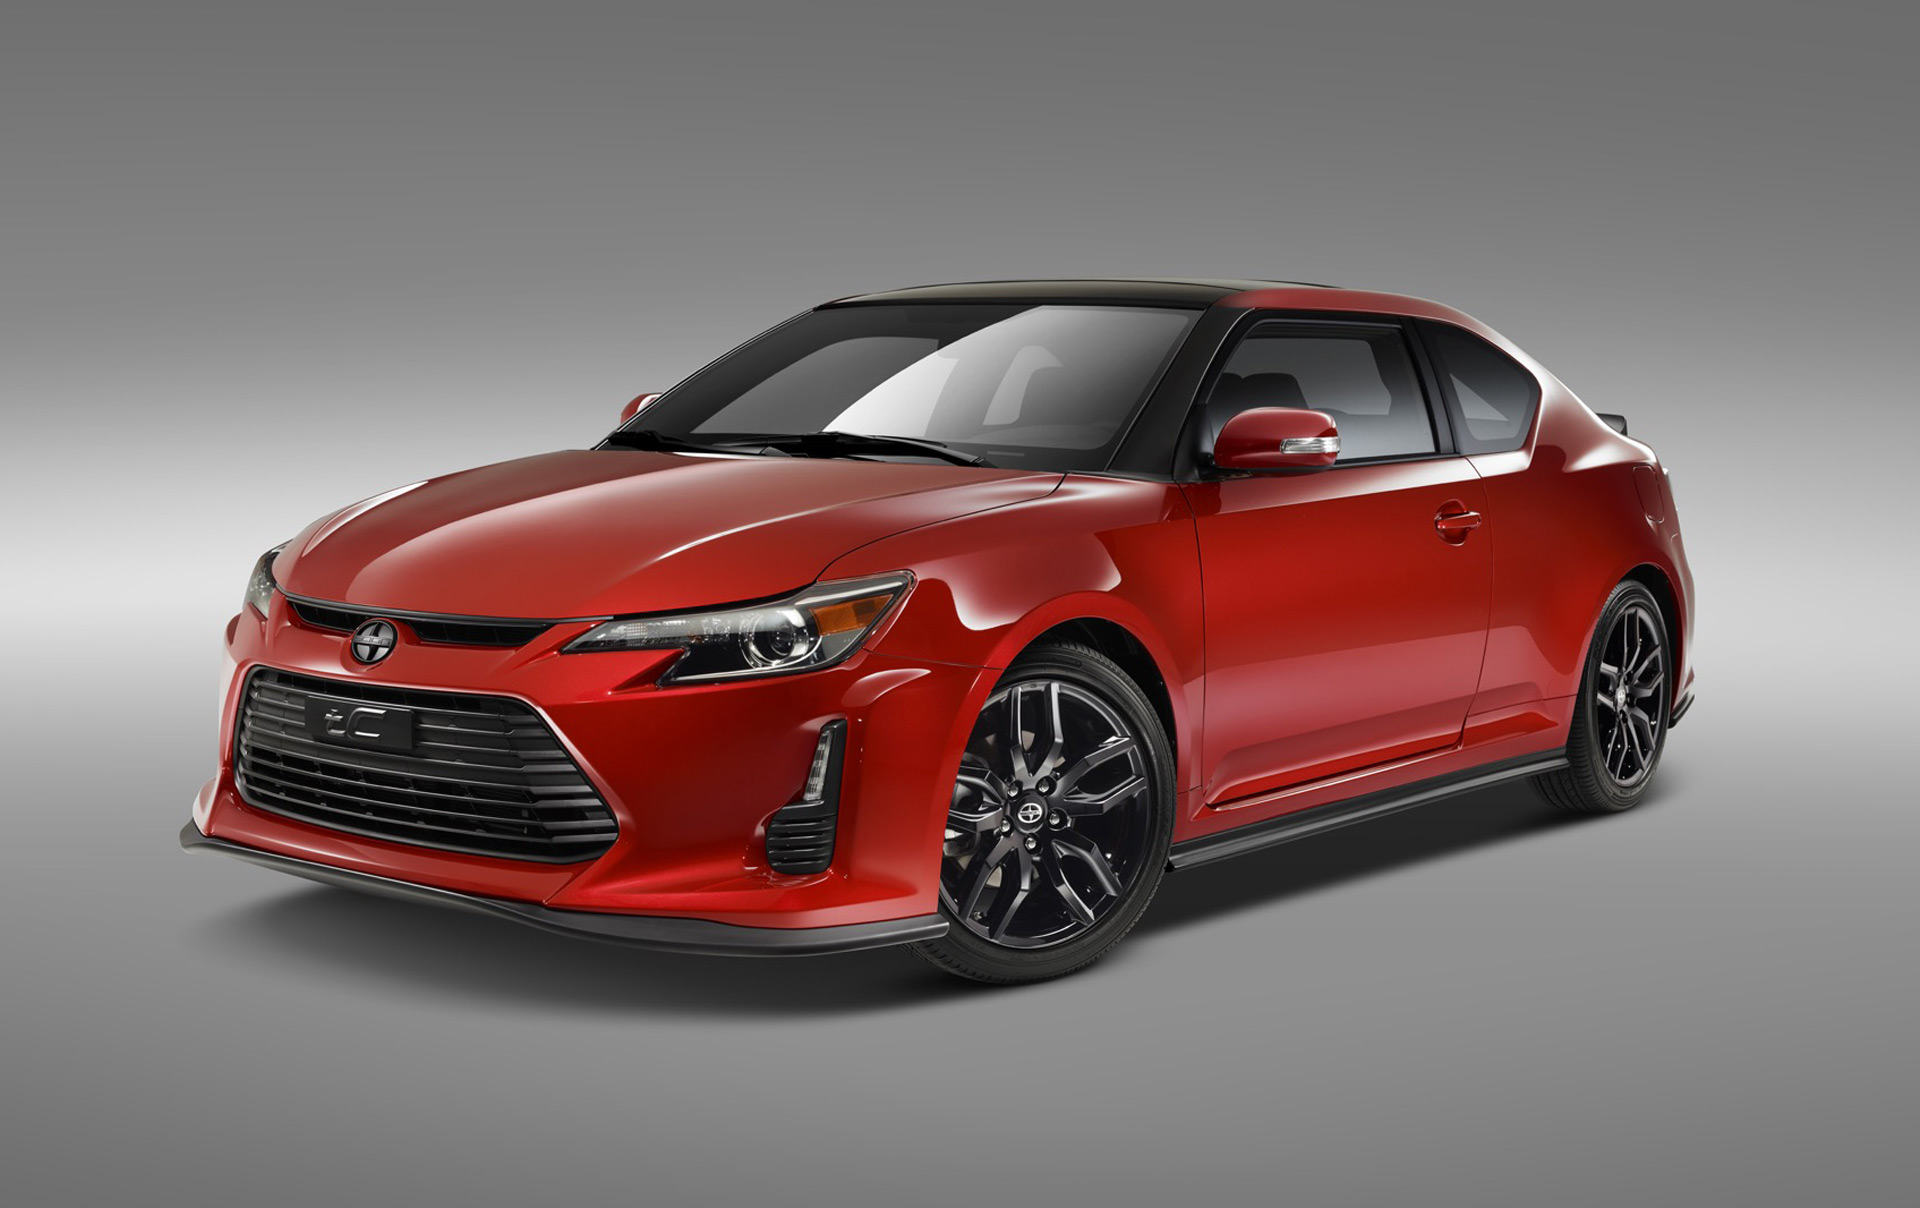 2016 Scion Tc Goes Out With Tuner Flair Racy Final Edition For New York Debut